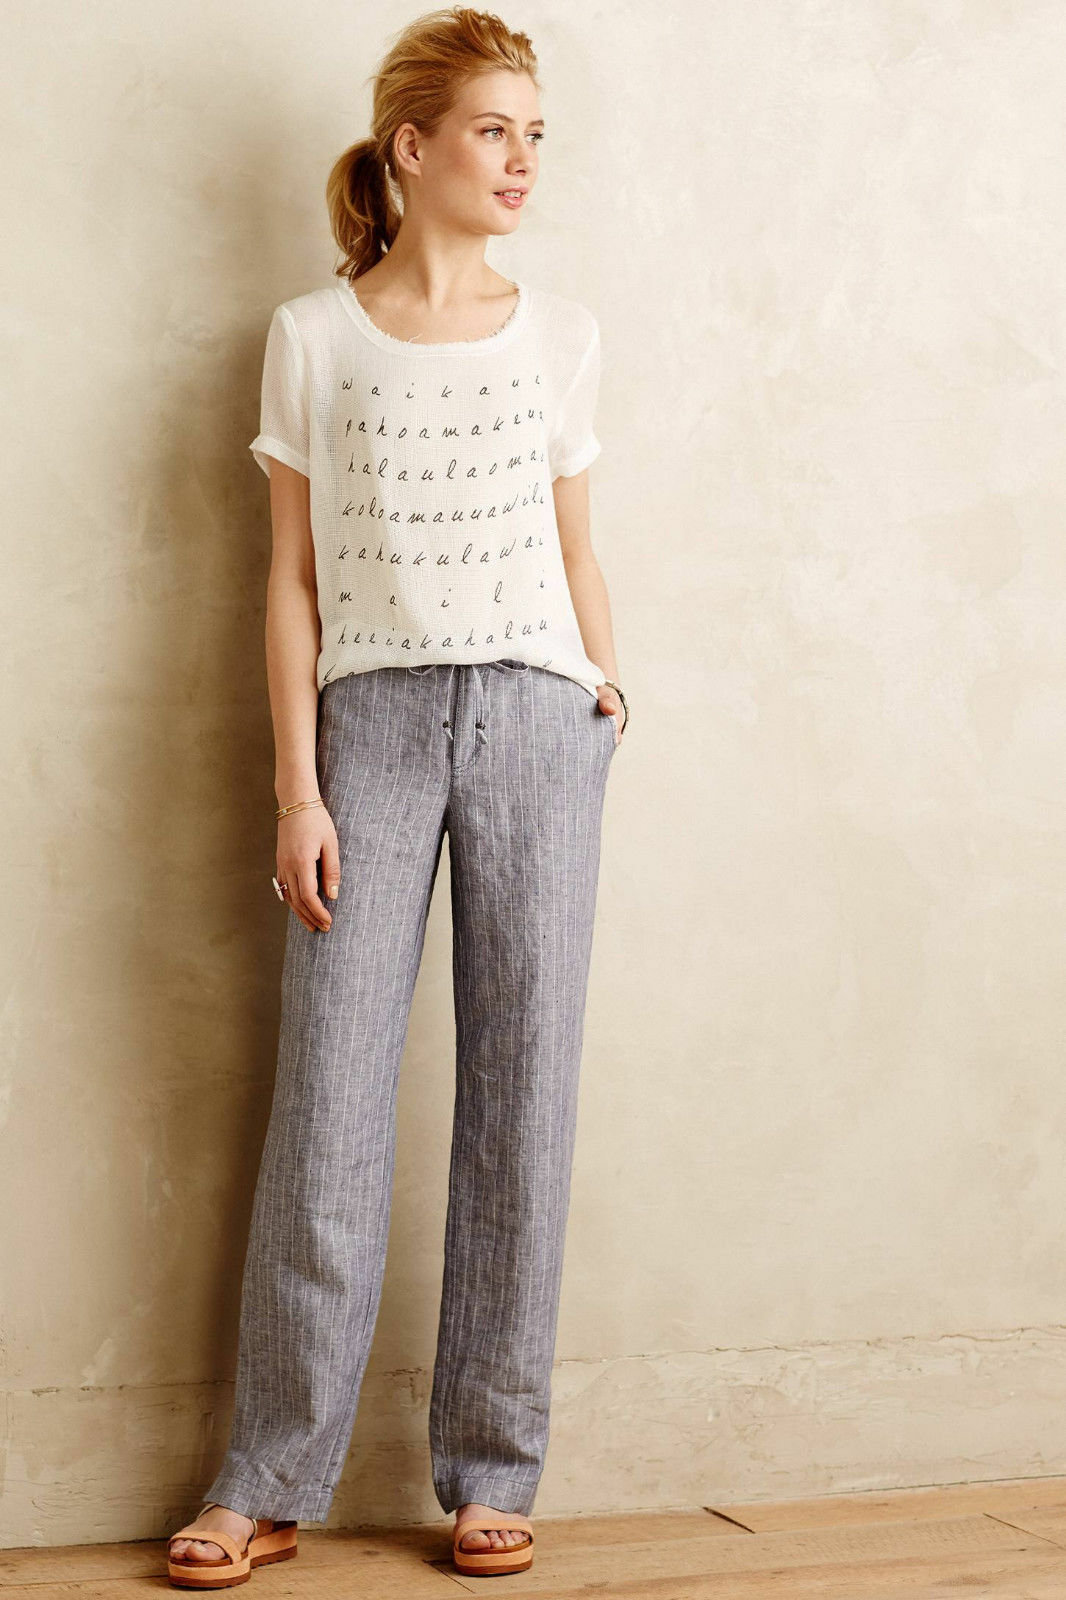 Anthropologie Pants Trousers bluee Pinstriped Linen Relaxed Fit By Marrakech, 26